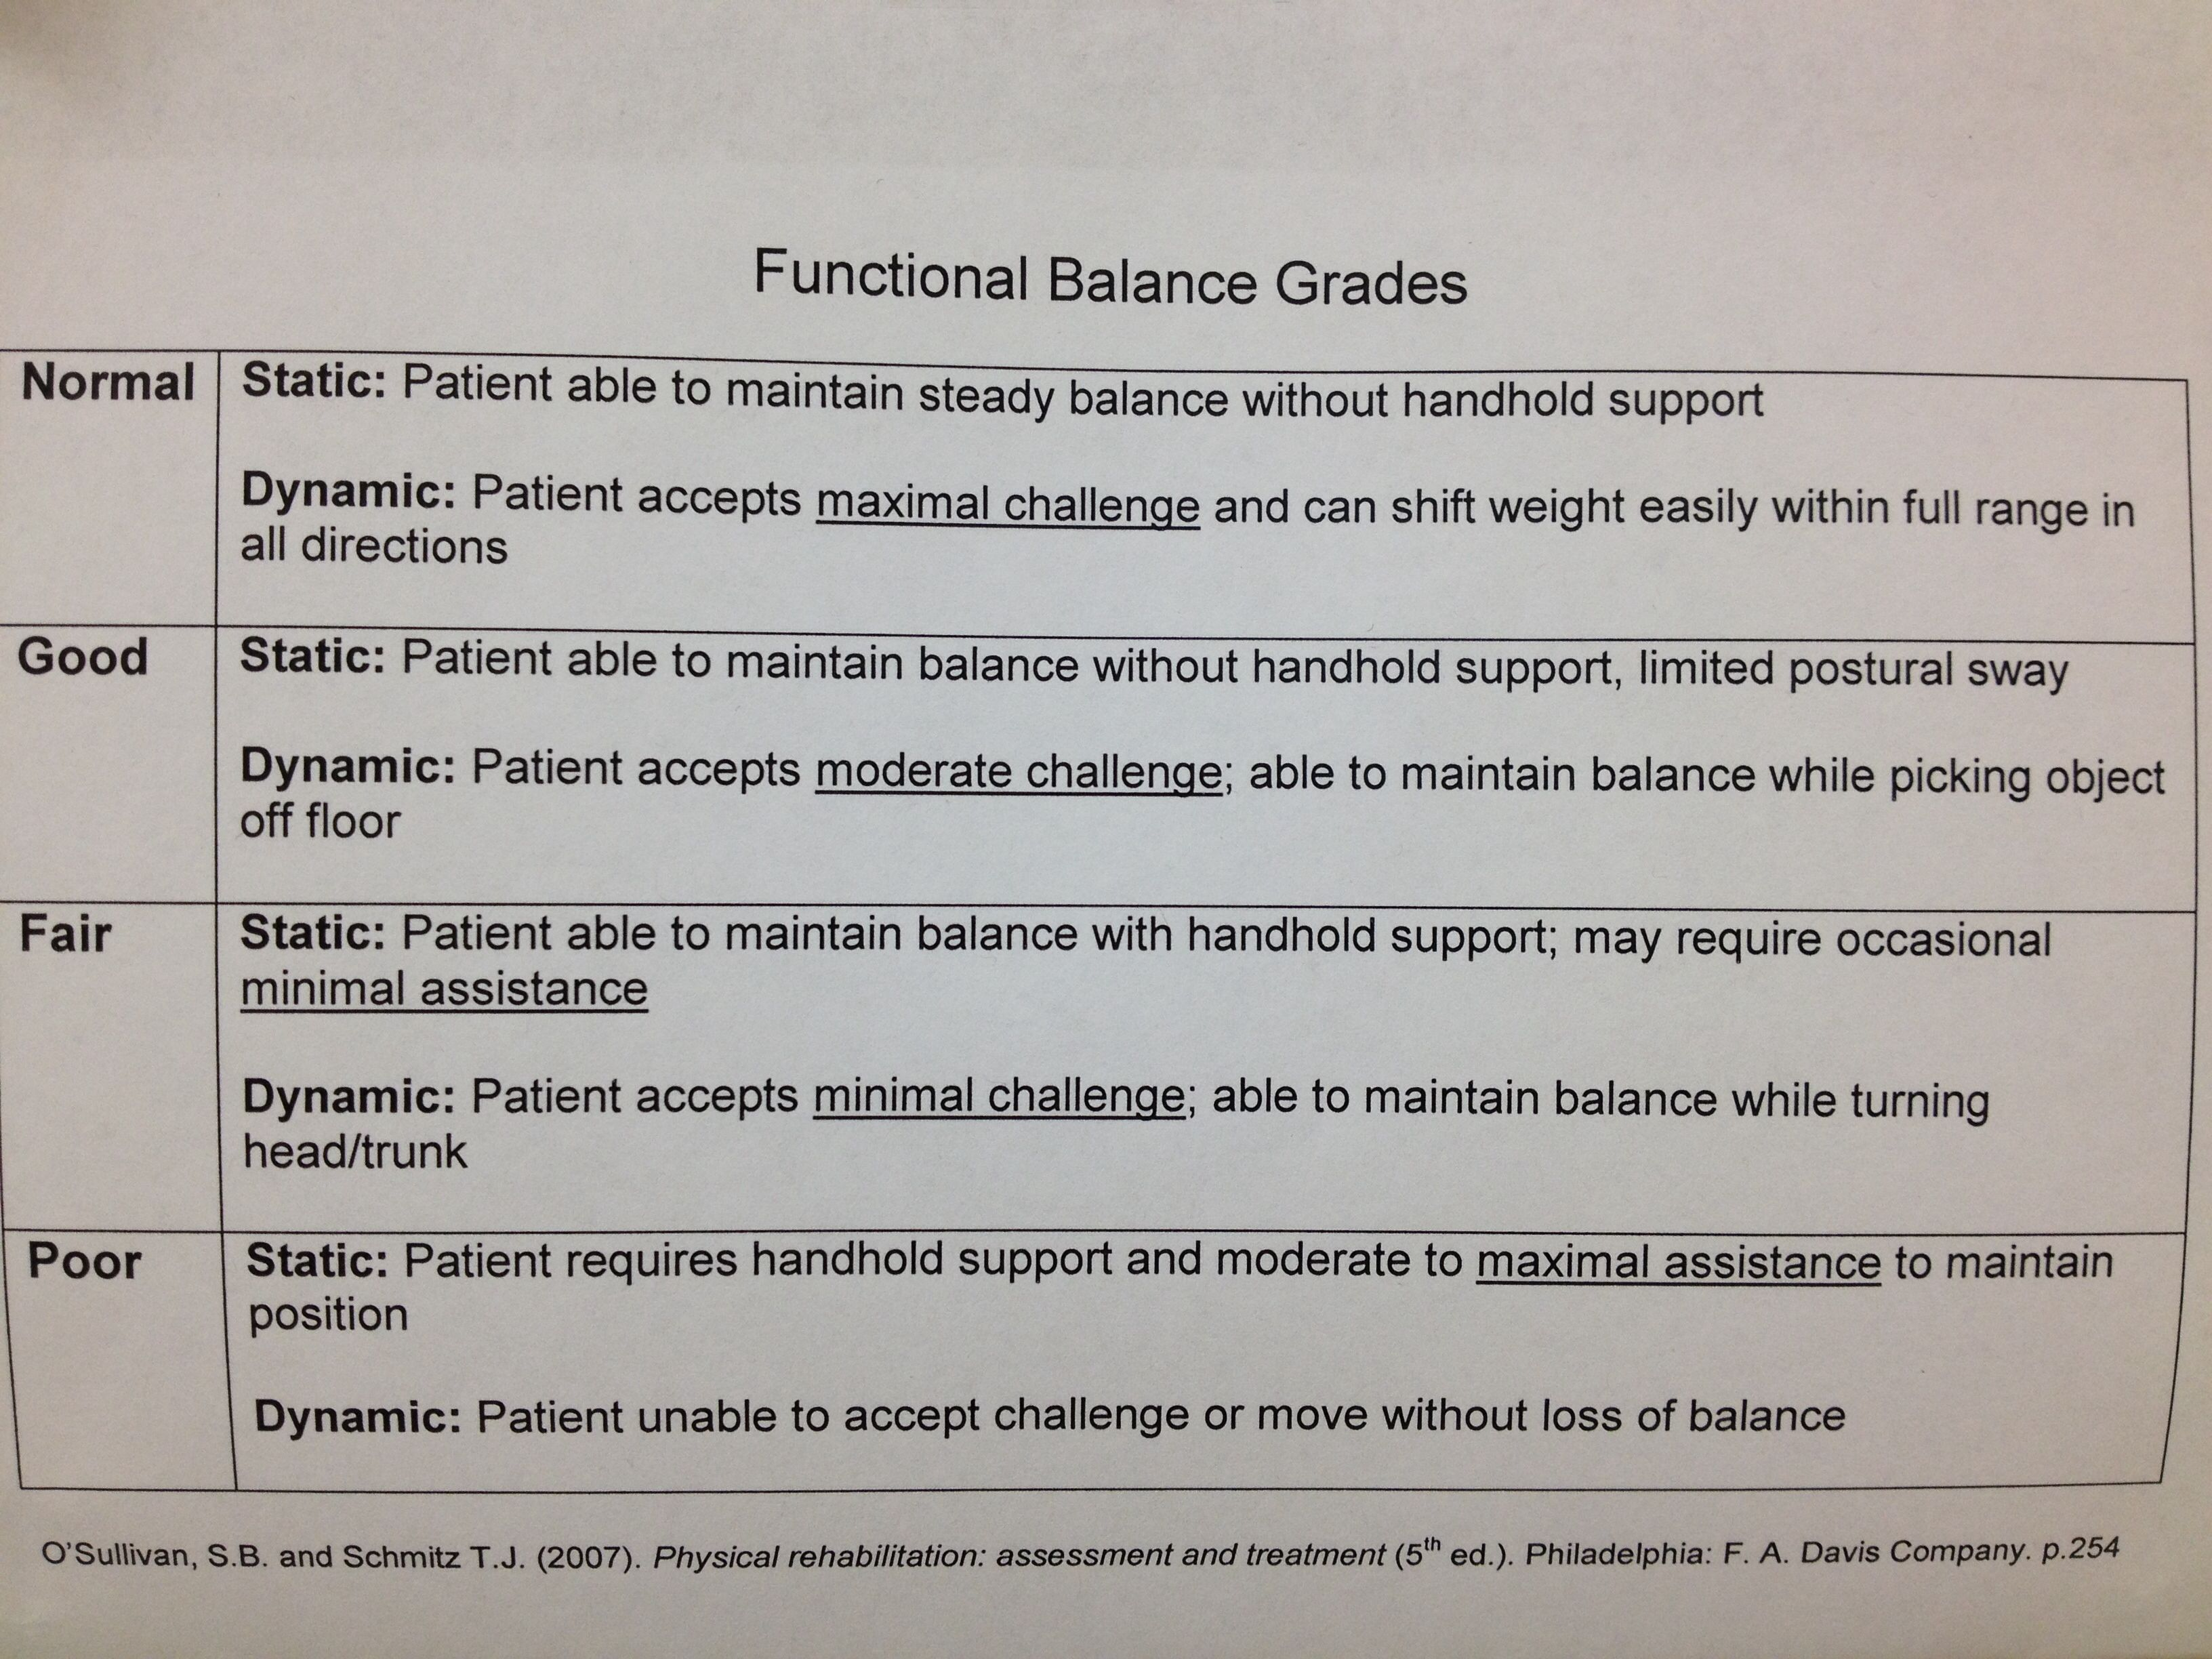 Functional Balance Grades  Occupational Therapy